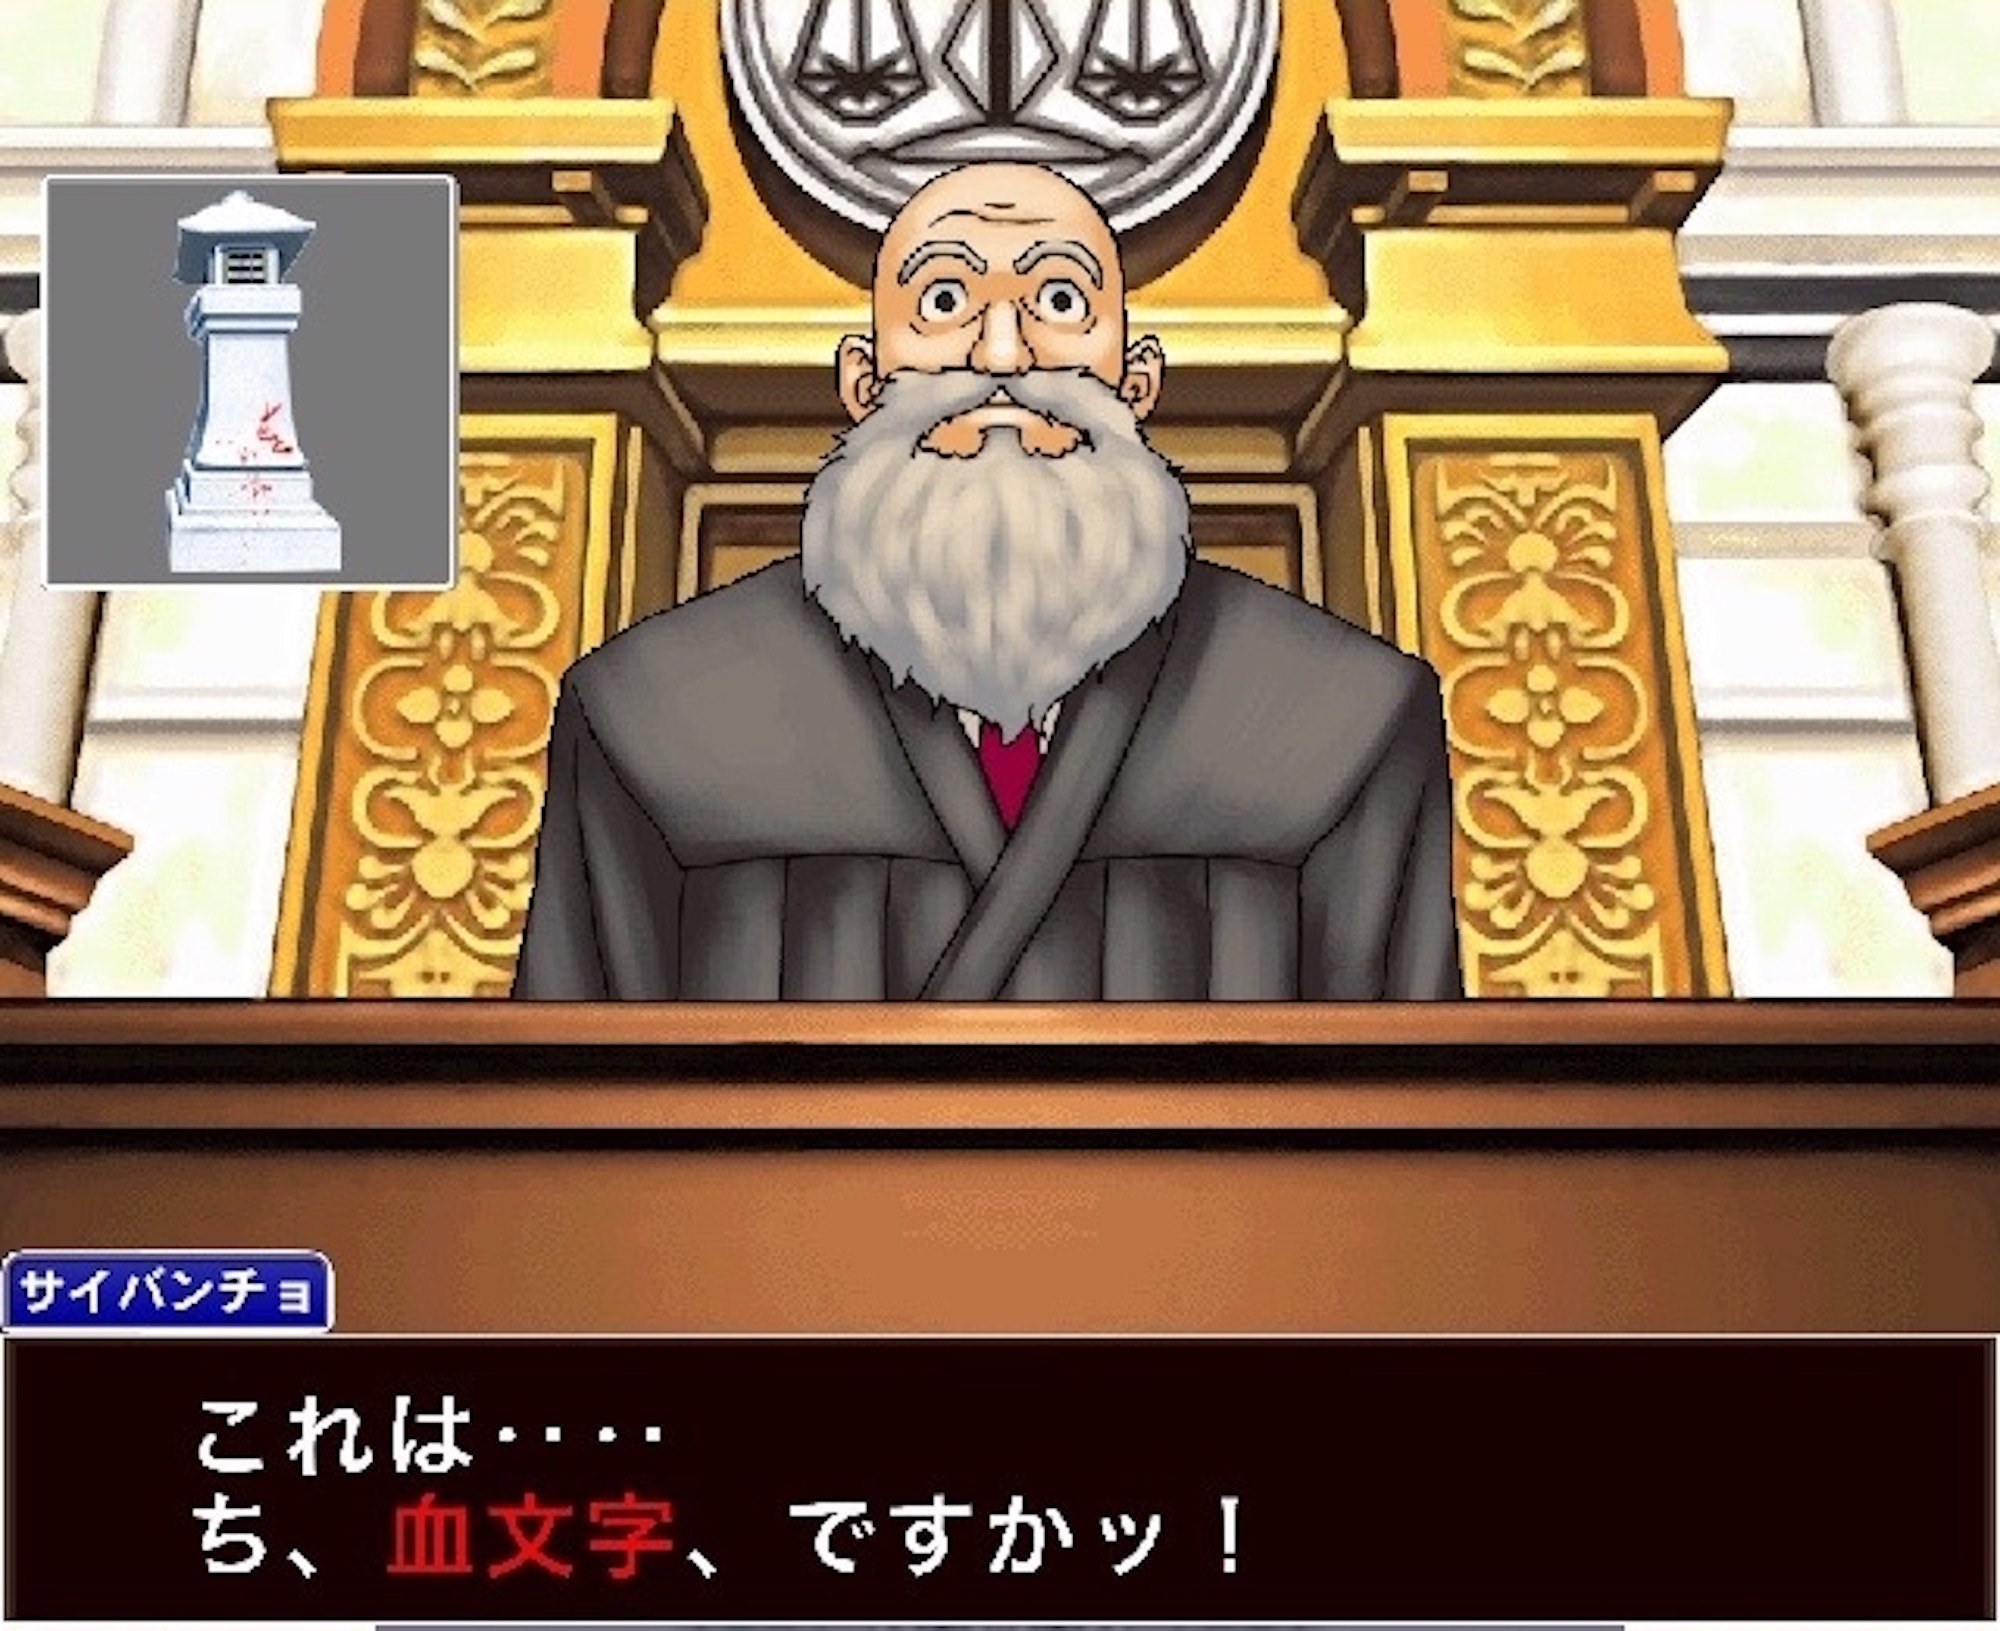 Learn Japanese by Playing Ace Attorney Gyakuten Saiban Step Up Japanese Japanese Lessons Brighton Fran Wrigley Screenshot from iOS 1.jpg